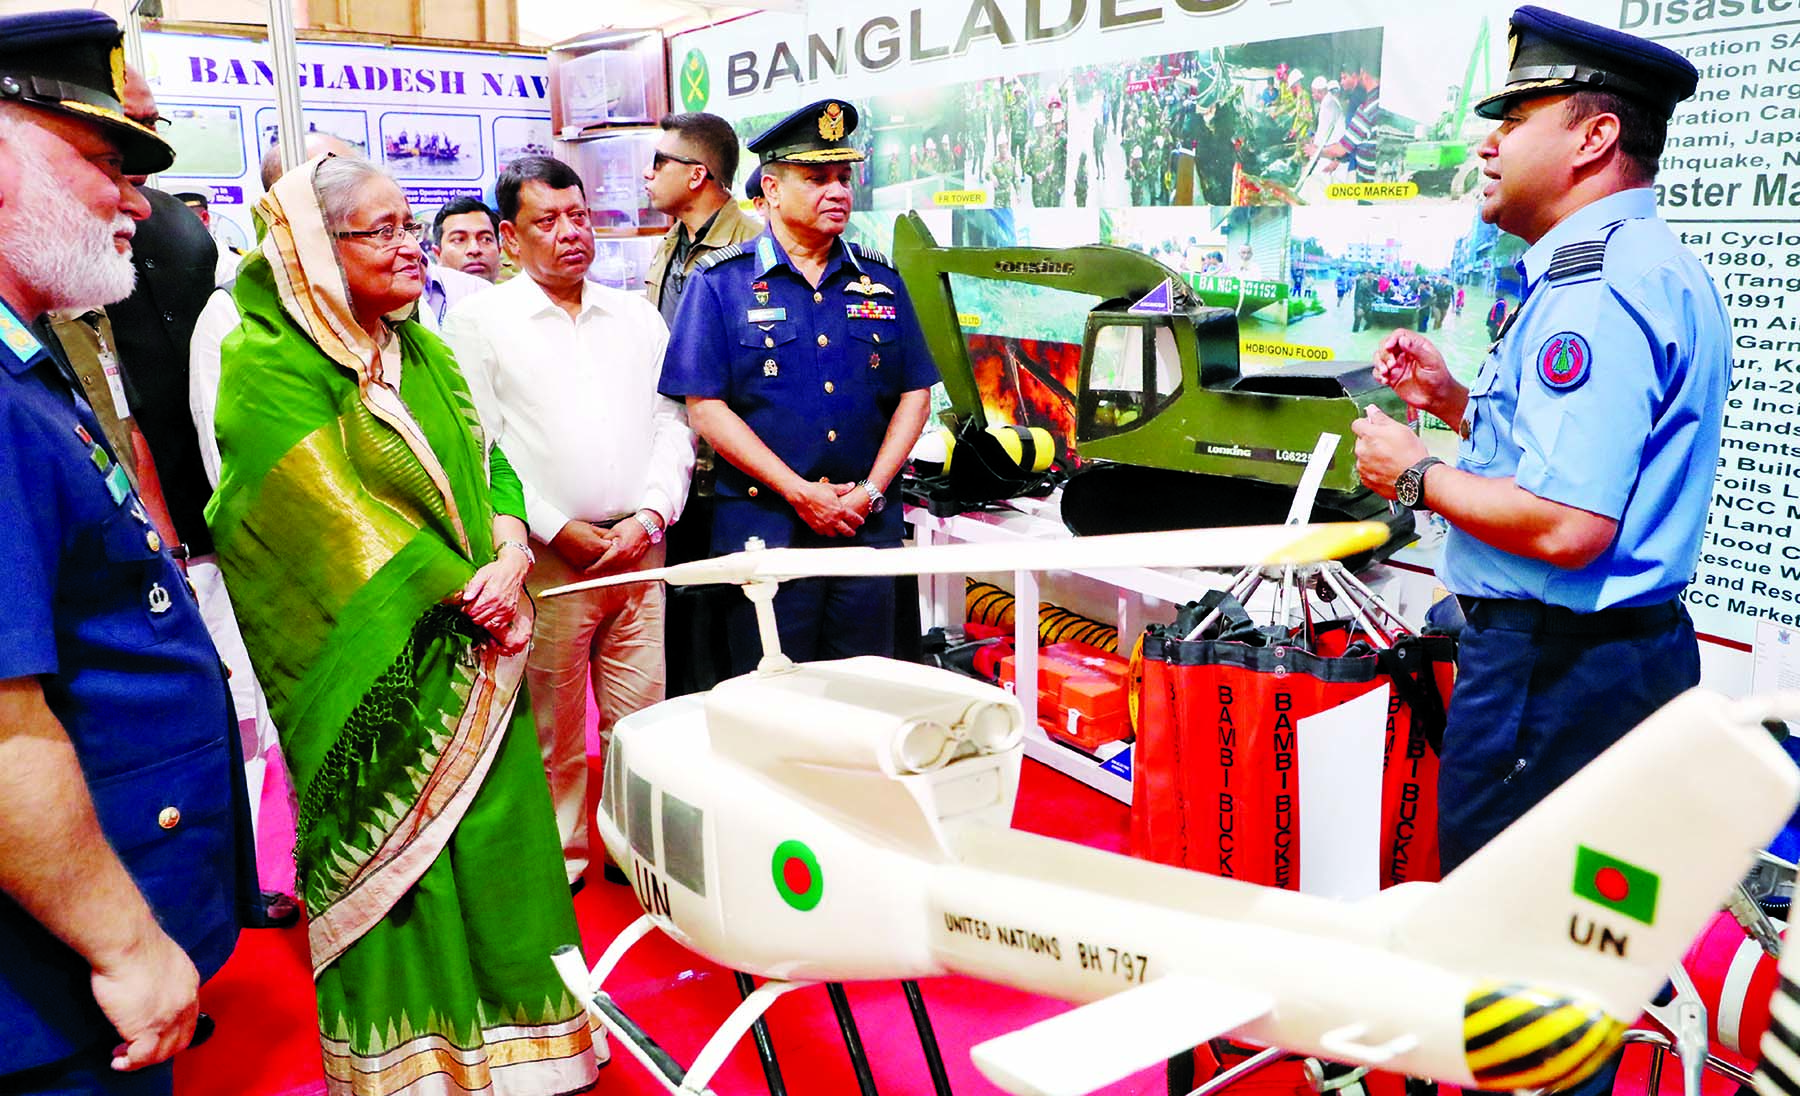 Prime Minister Sheikh Hasina  yesterday visited different stalls at Bangabandhu International Conference Center in the city on  the occasion of International Day for Disaster Reduction.